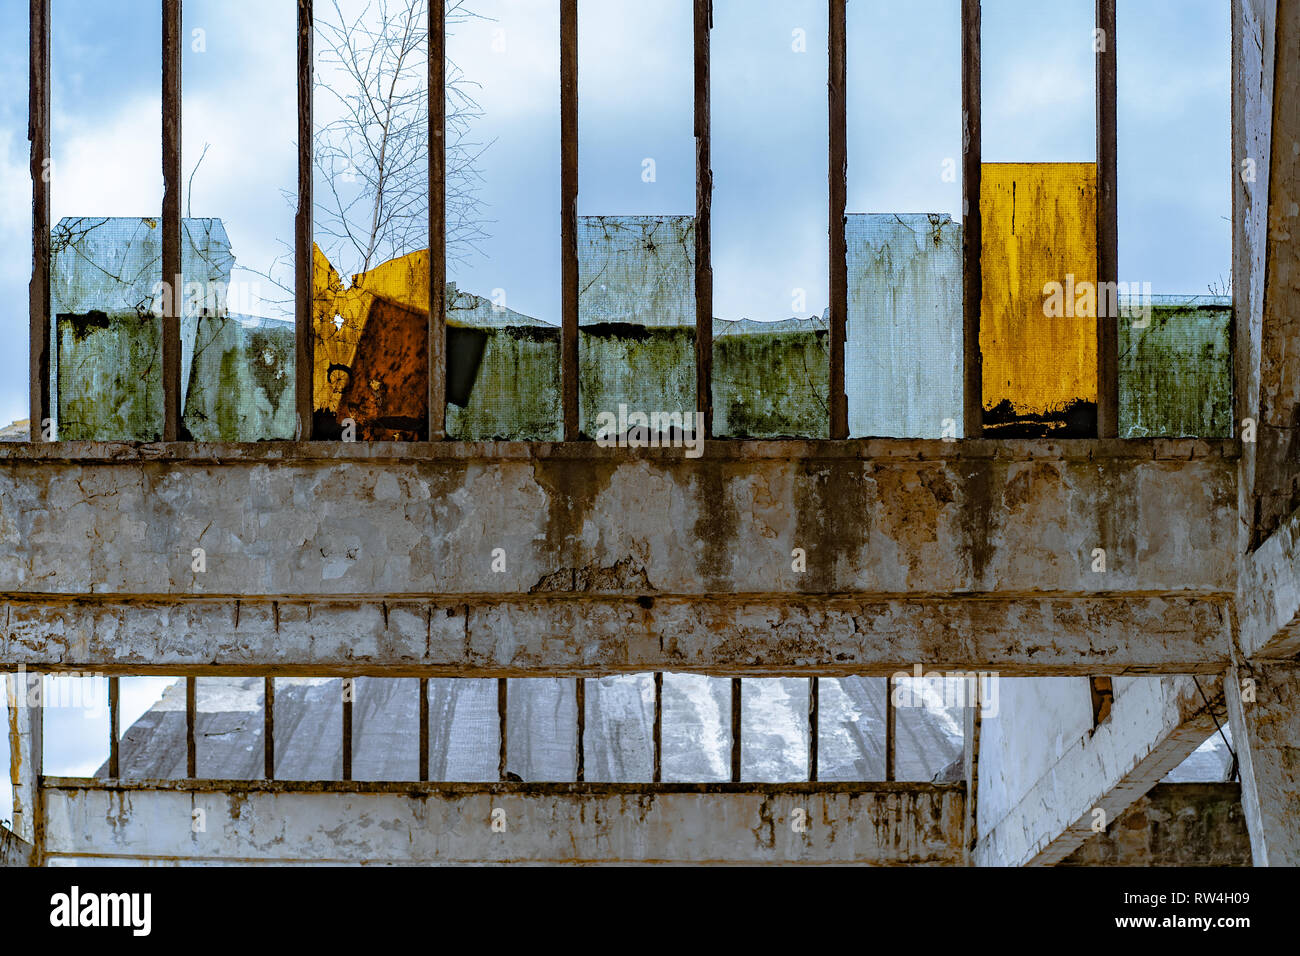 Broken window in abandoned chemical fiber factory - Chemitex - Stock Image